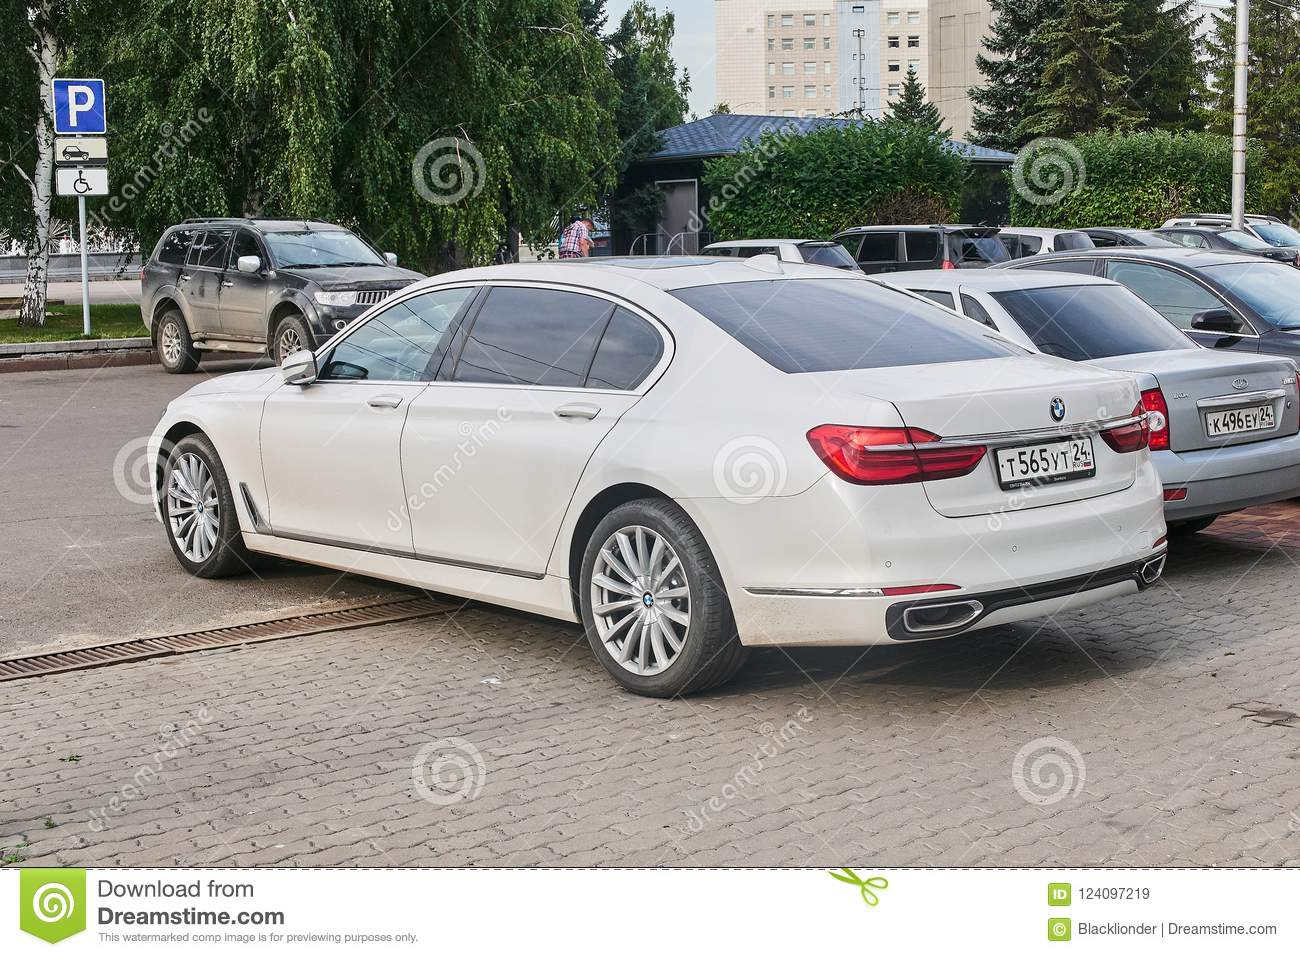 Bmw 7 Series Left Rear View Editorial Stock Image Image Of Exhibition Presentation 124097219